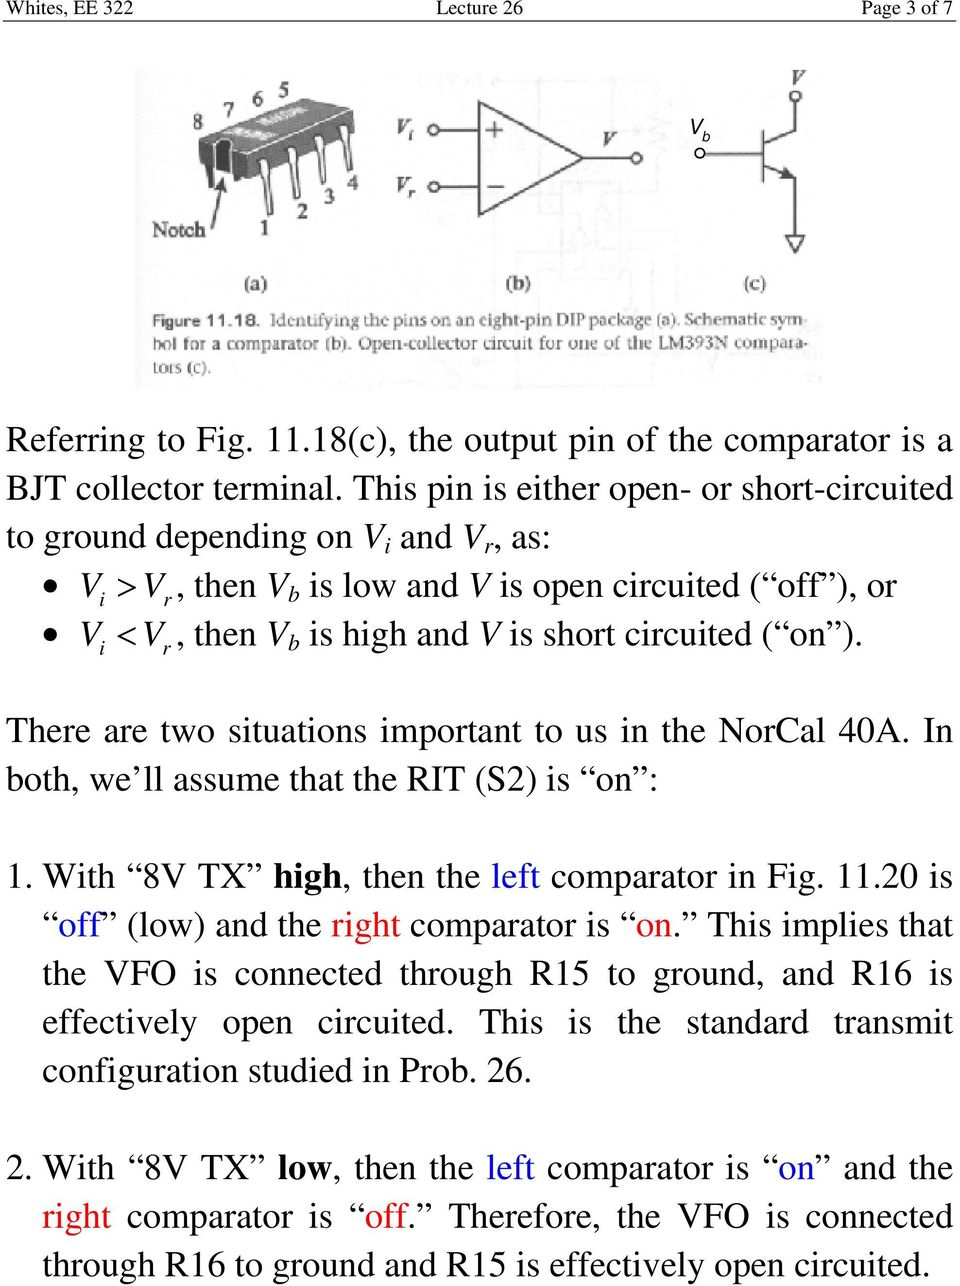 i r There are two situations important to us in the NorCal 40A. In oth, we ll assume that the RIT (S2) is on : 1. With 8V TX high, then the left comparator in Fig. 11.